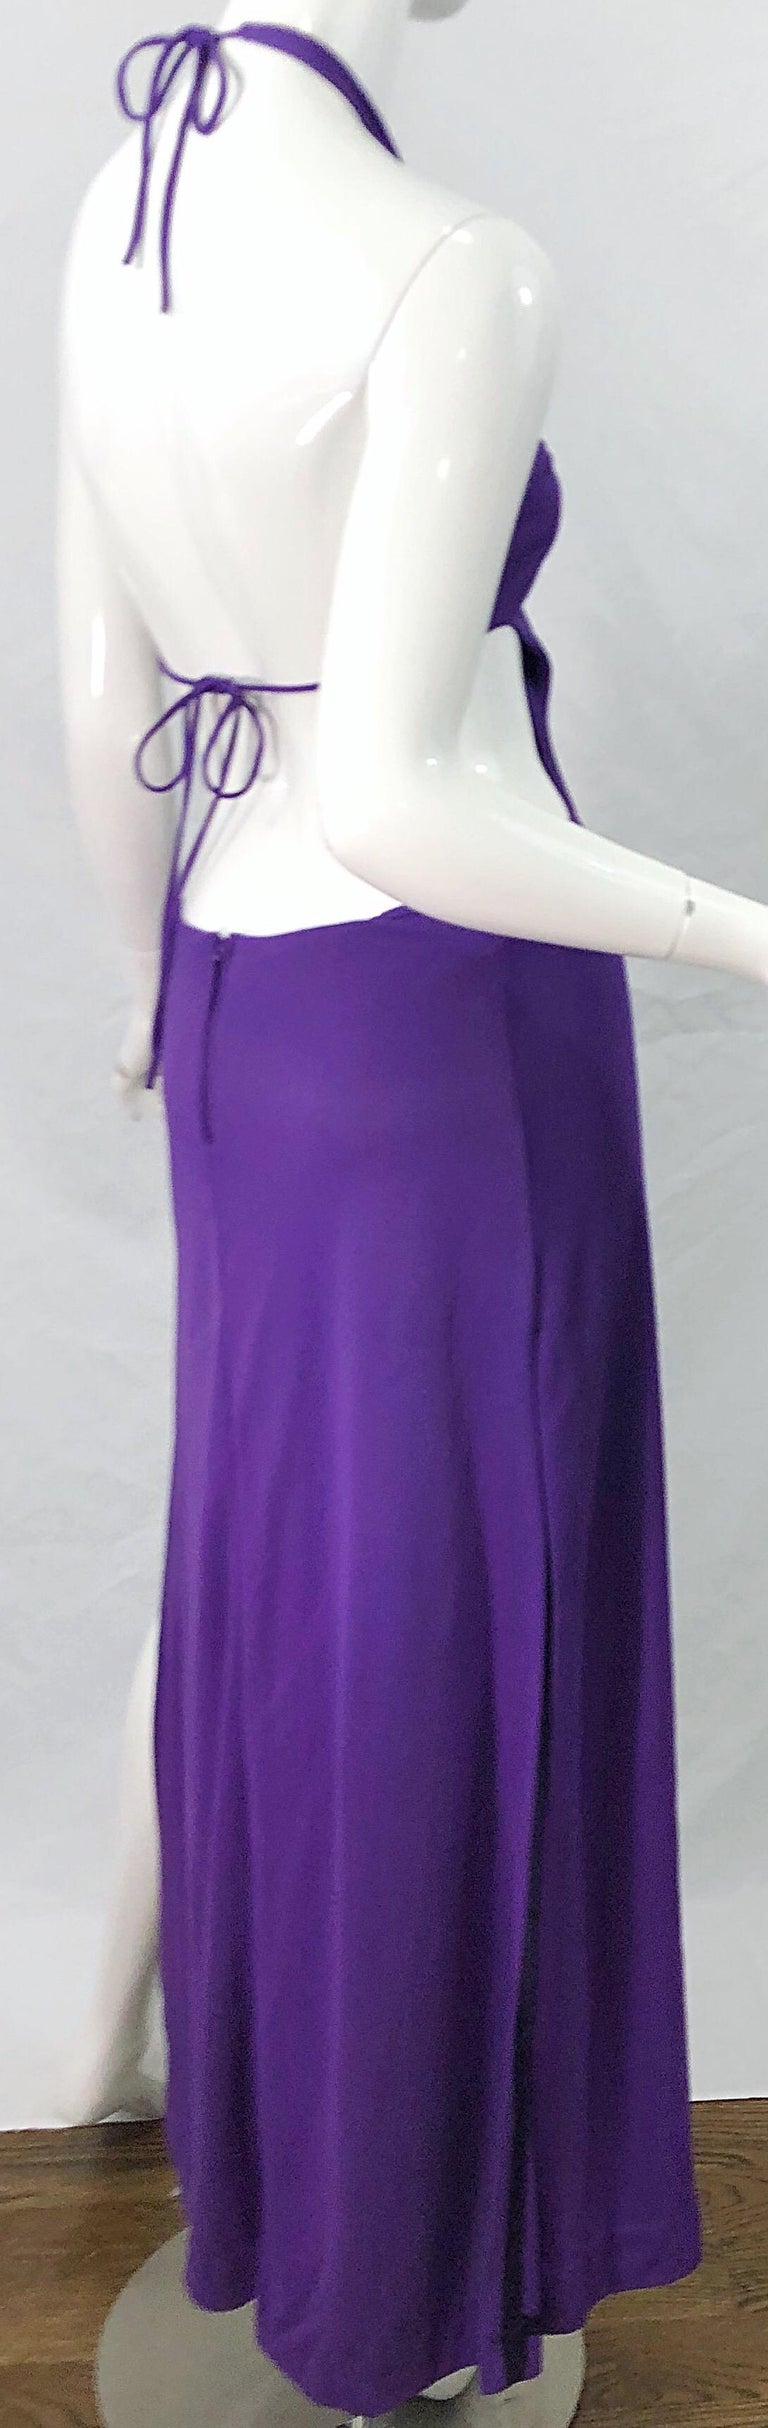 1970s Purple Cut - Out Sexy Jersey Vintage 70s Halter Maxi Dress Gown For Sale 3